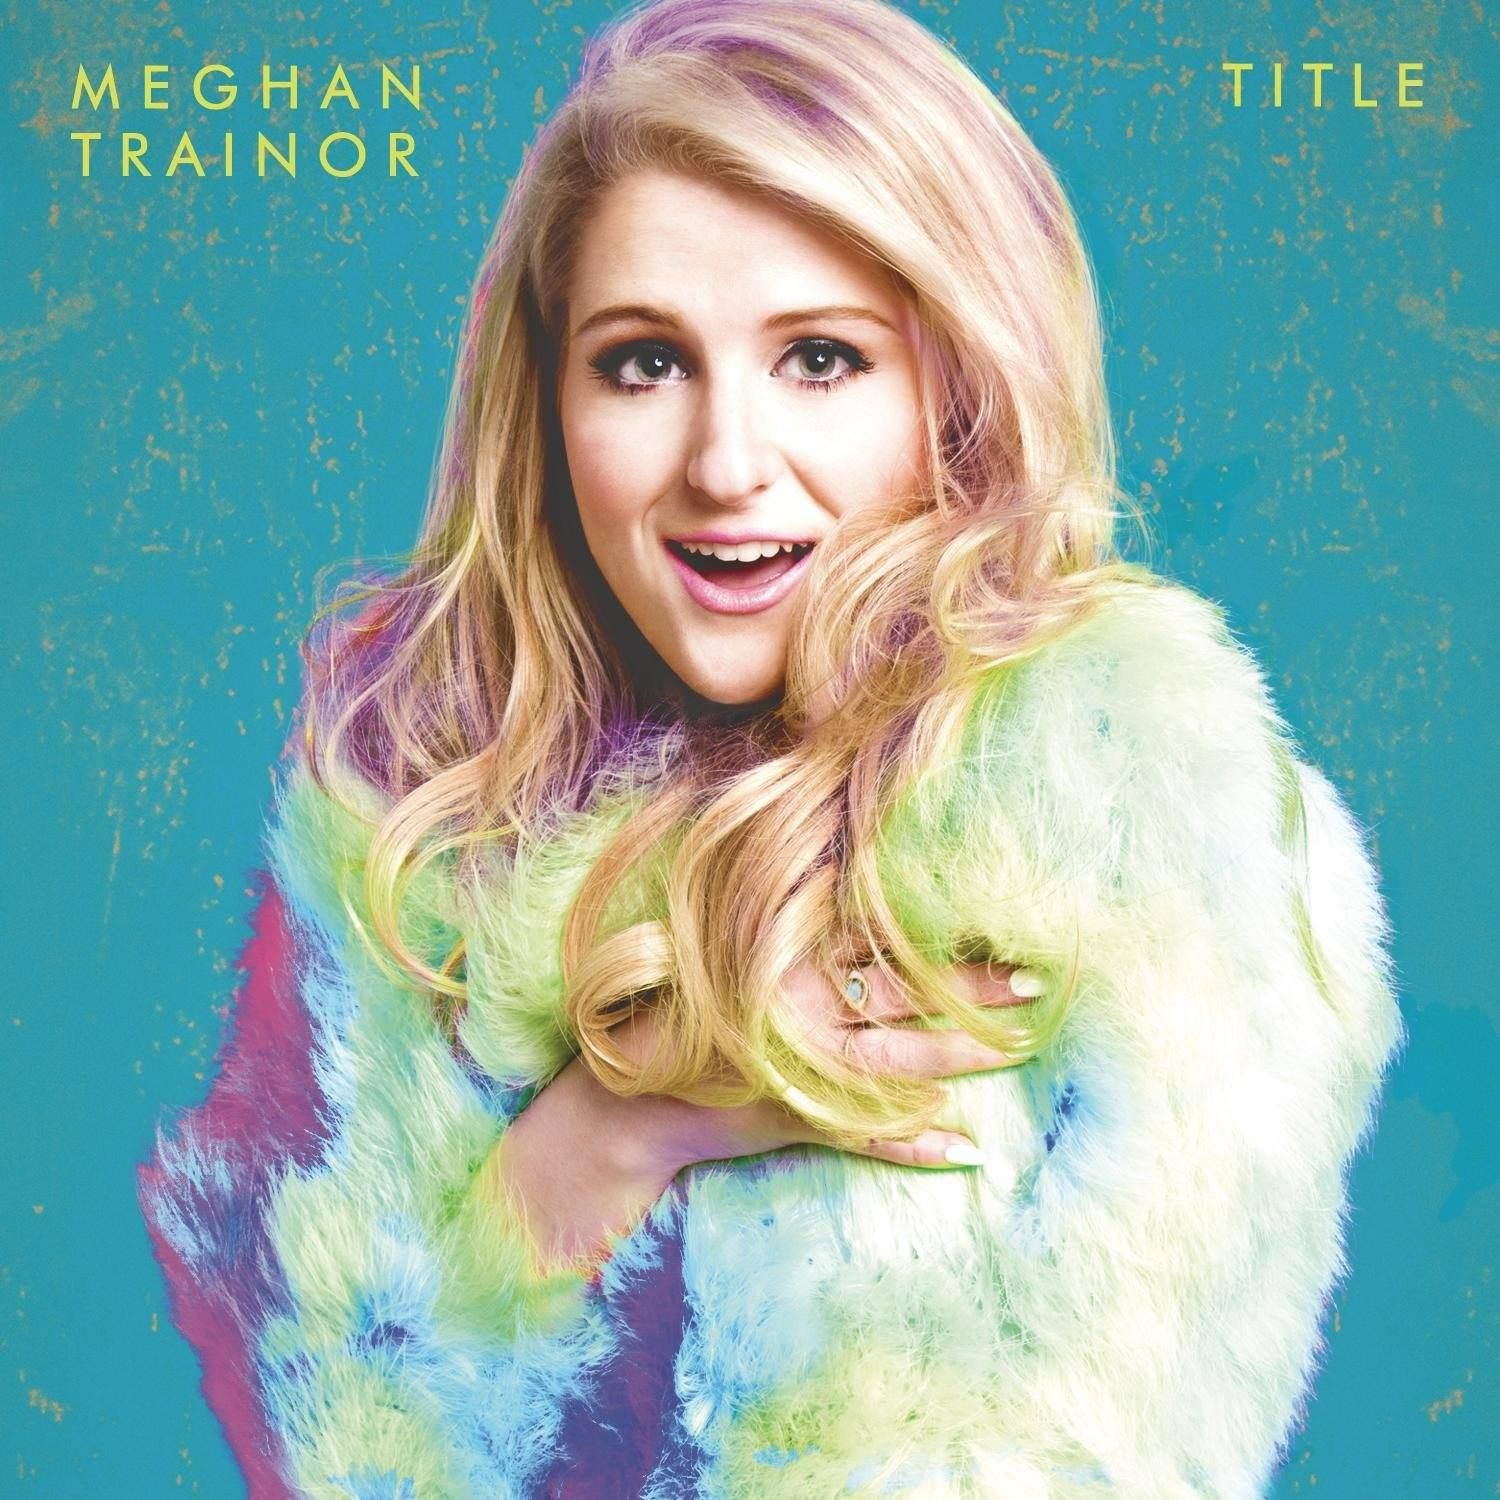 Meghan Trainor - Title album cover